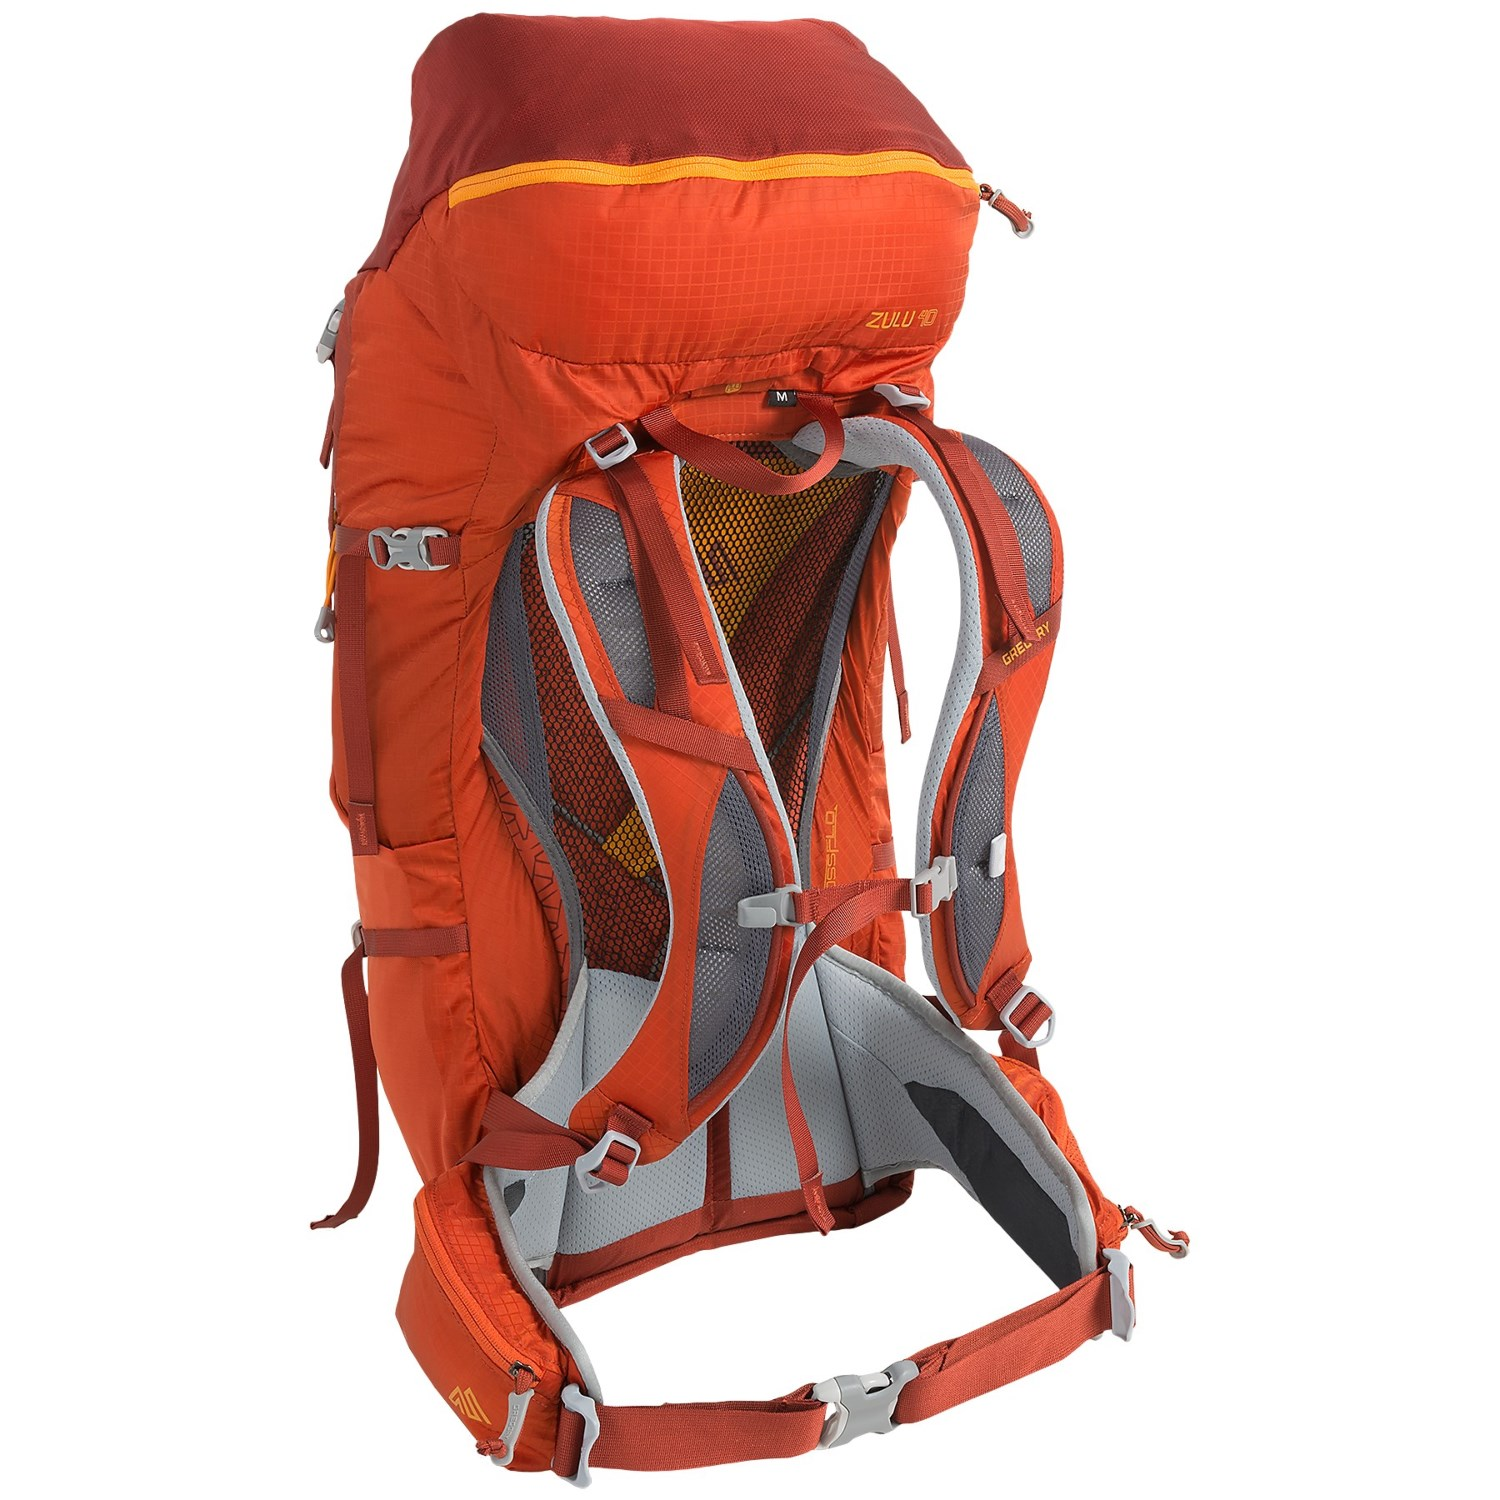 Osprey Escapist 25 Backpack  Chain Reaction Cycles